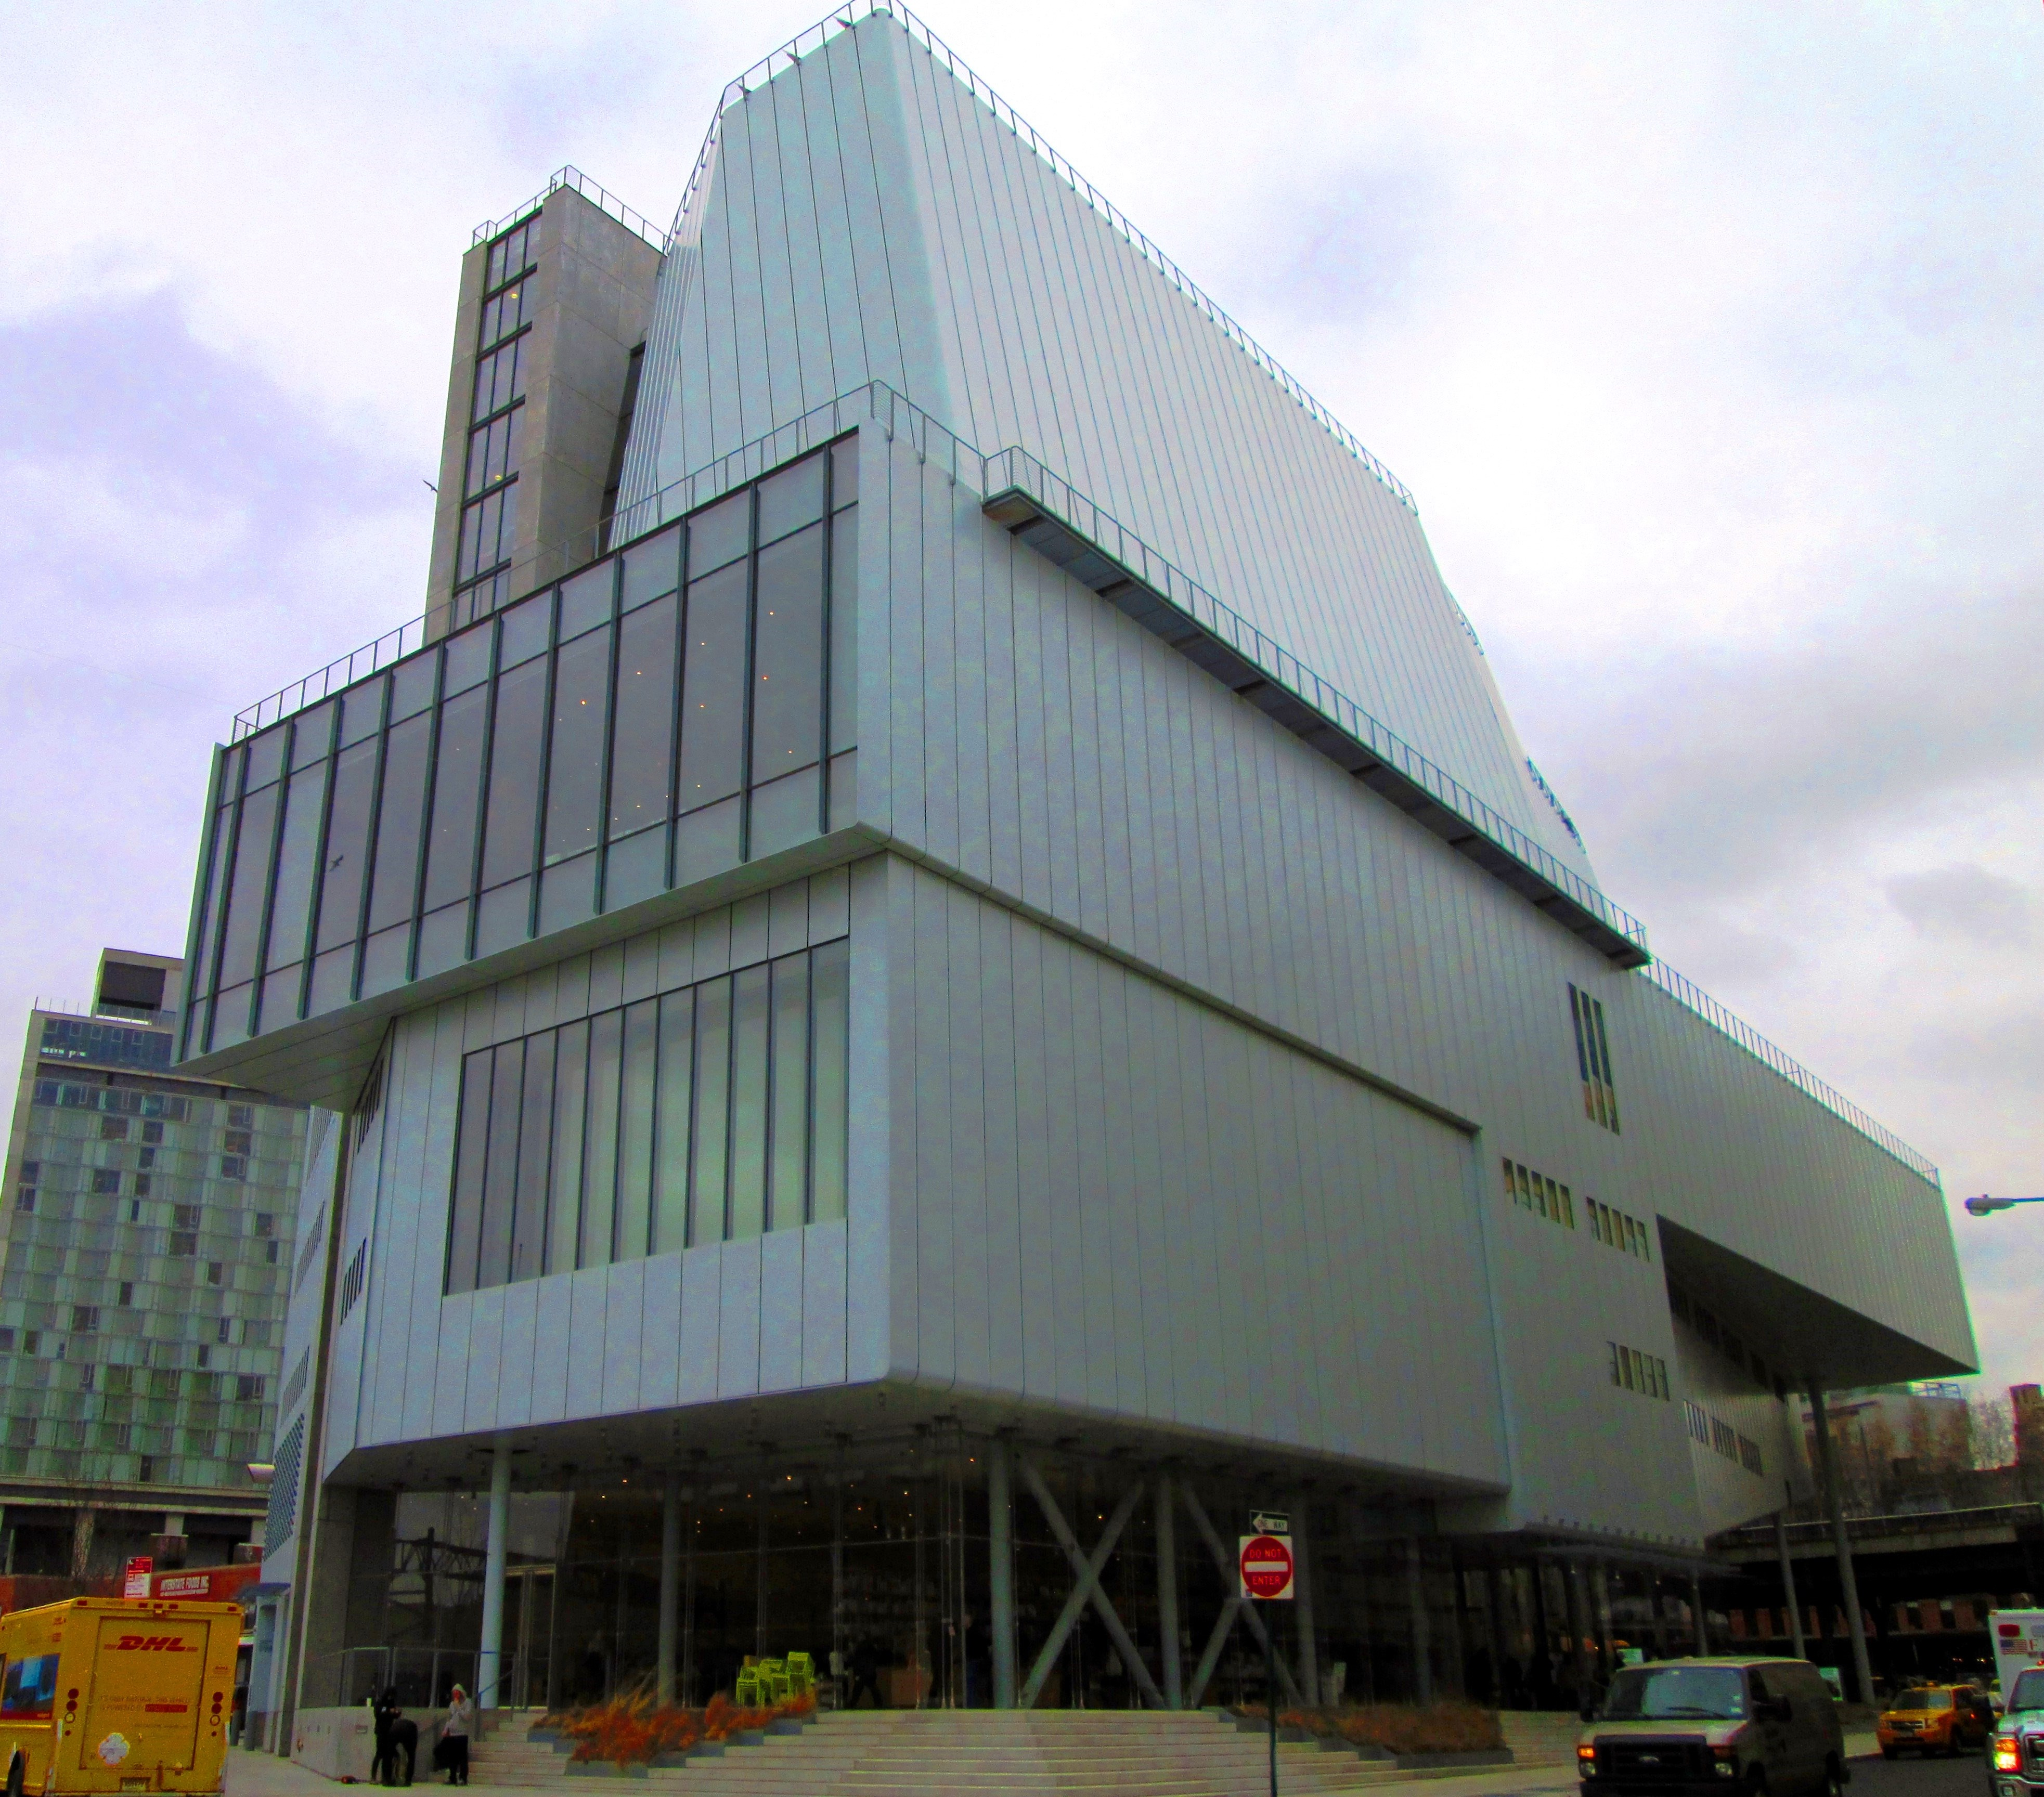 Travels in the 2nd half: The Real NYC #34 - The Whitney Museum